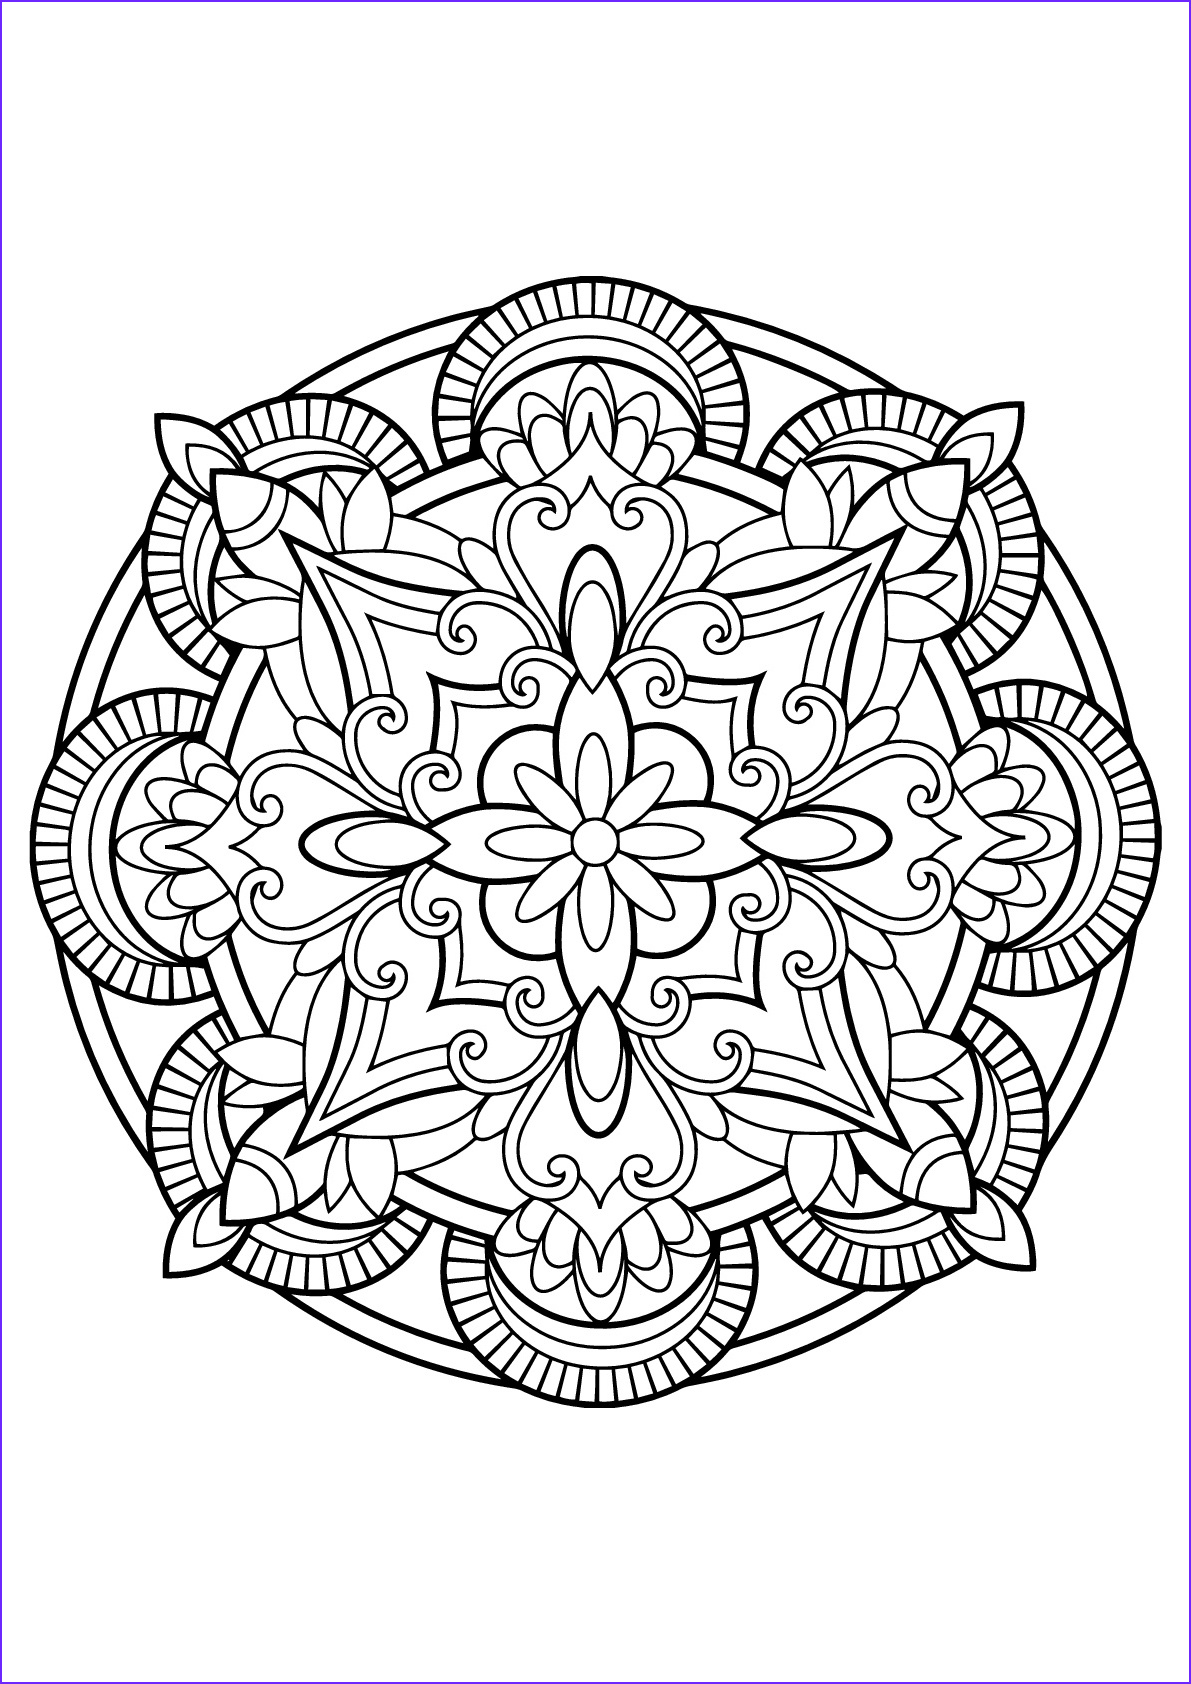 Mandala from free coloring books for adults 23 M&alas